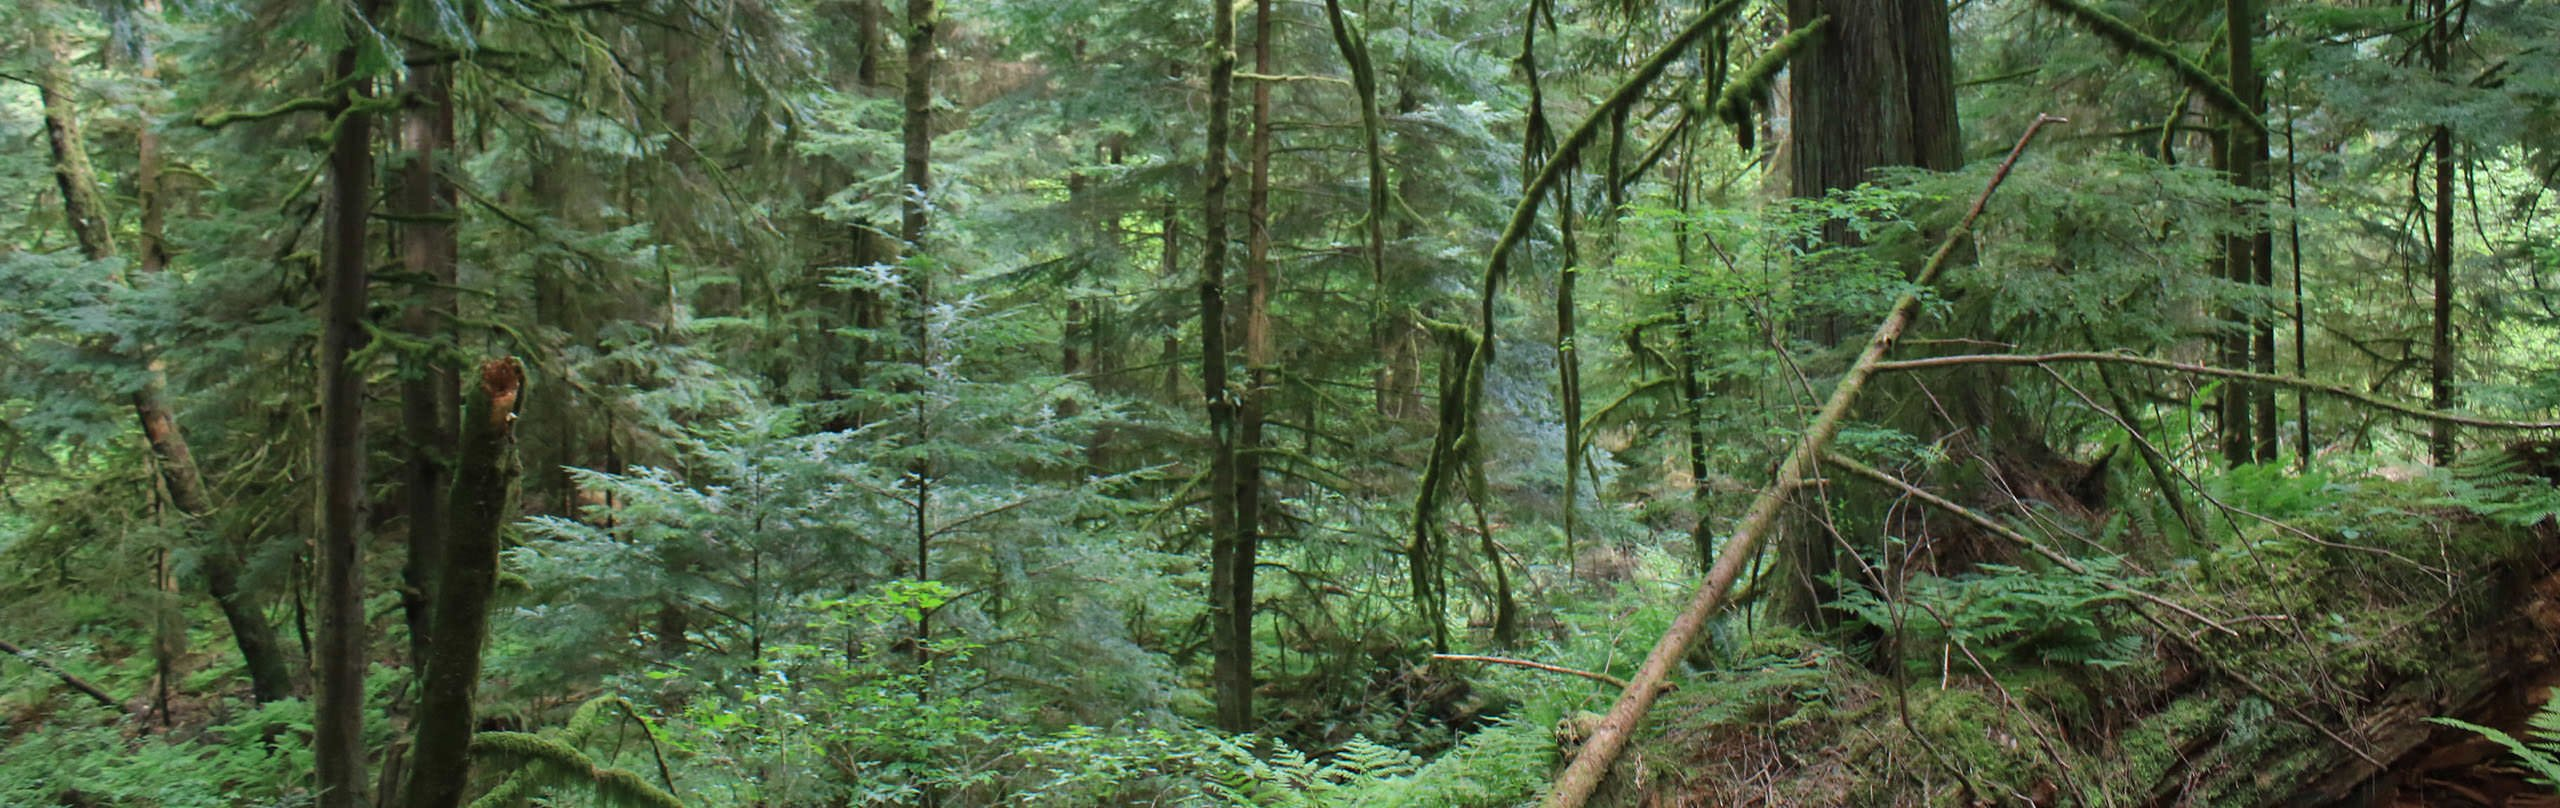 The forest on Bowen Island, BC